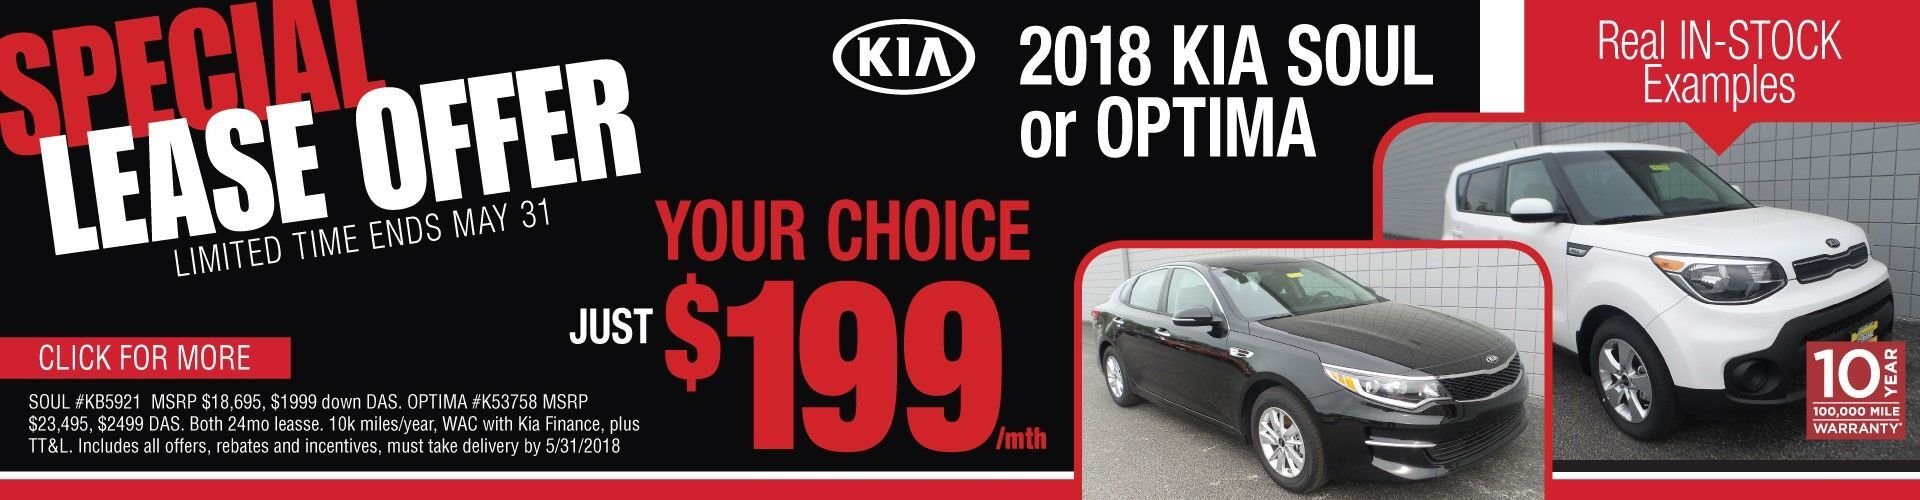 2018 Kia Soul or Optima Offers